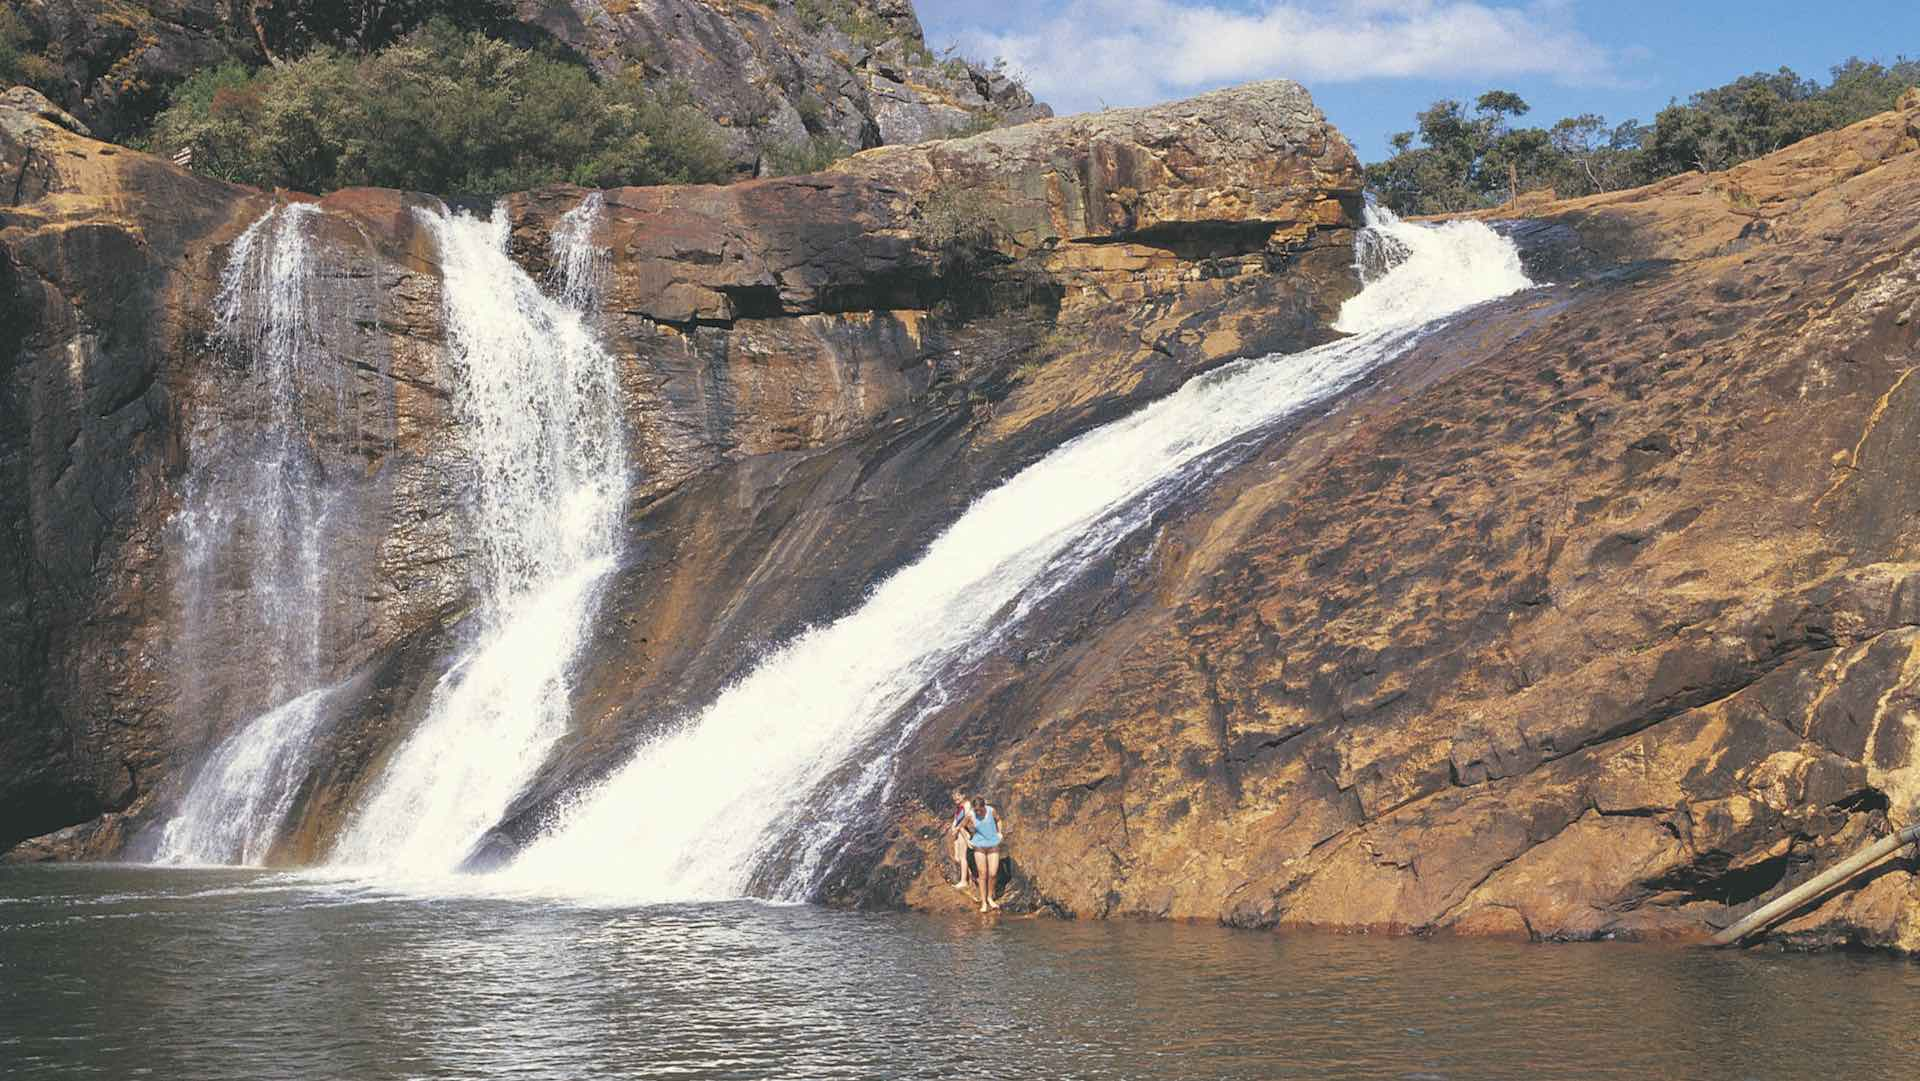 Serpentine Falls, in the Serpentine National Park